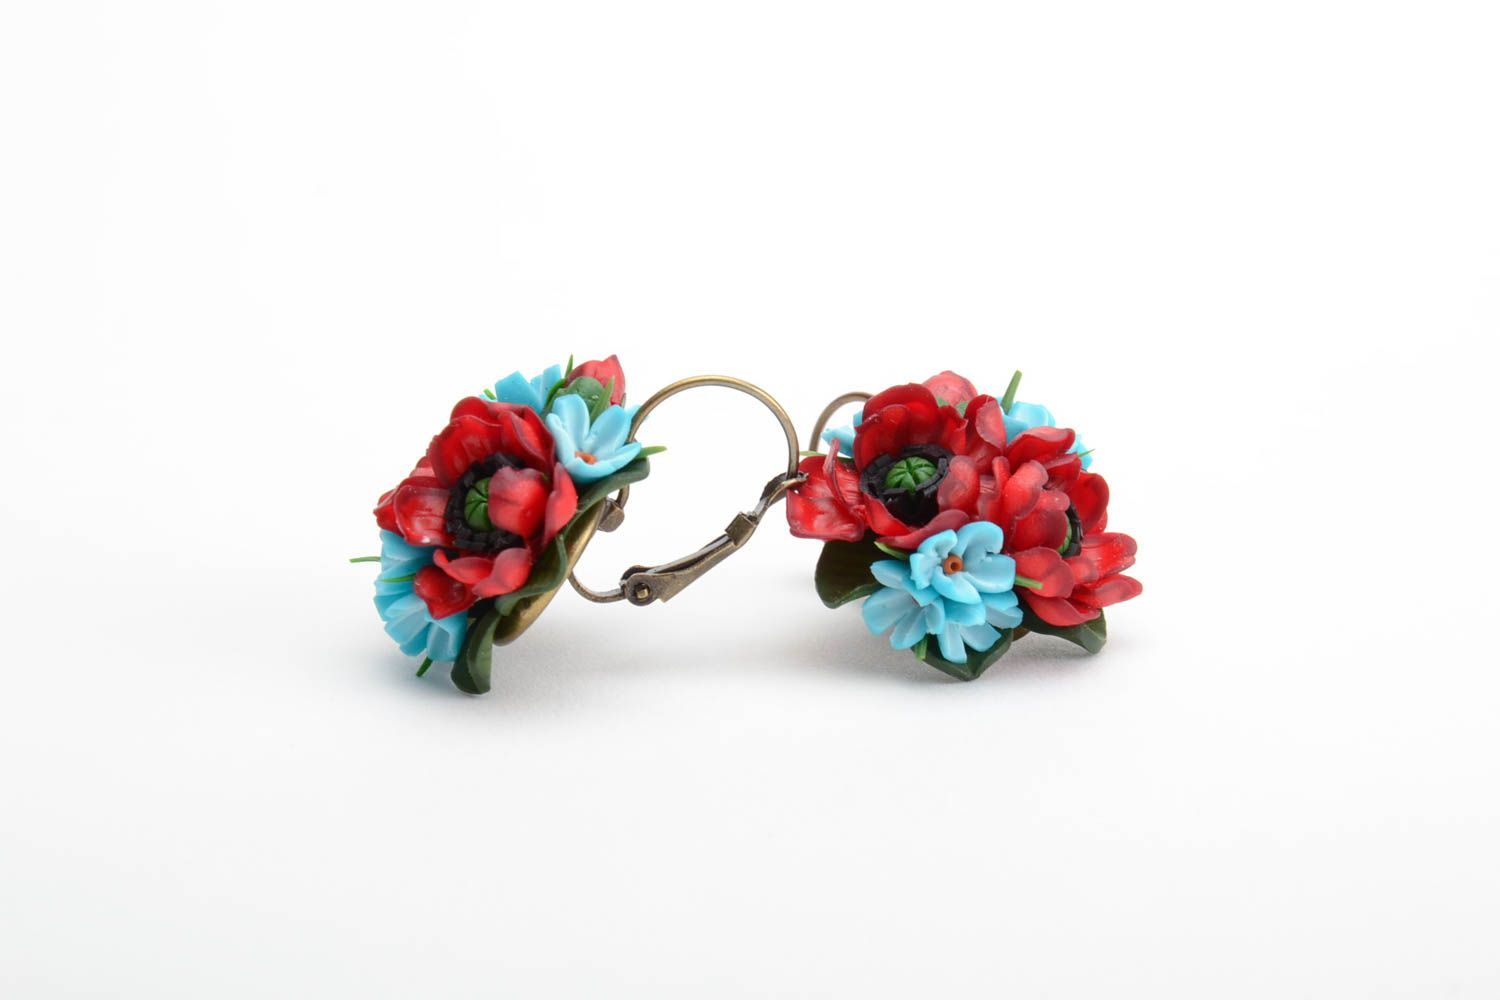 Handmade volume earrings with small red and blue polymer clay flower bouquets photo 4